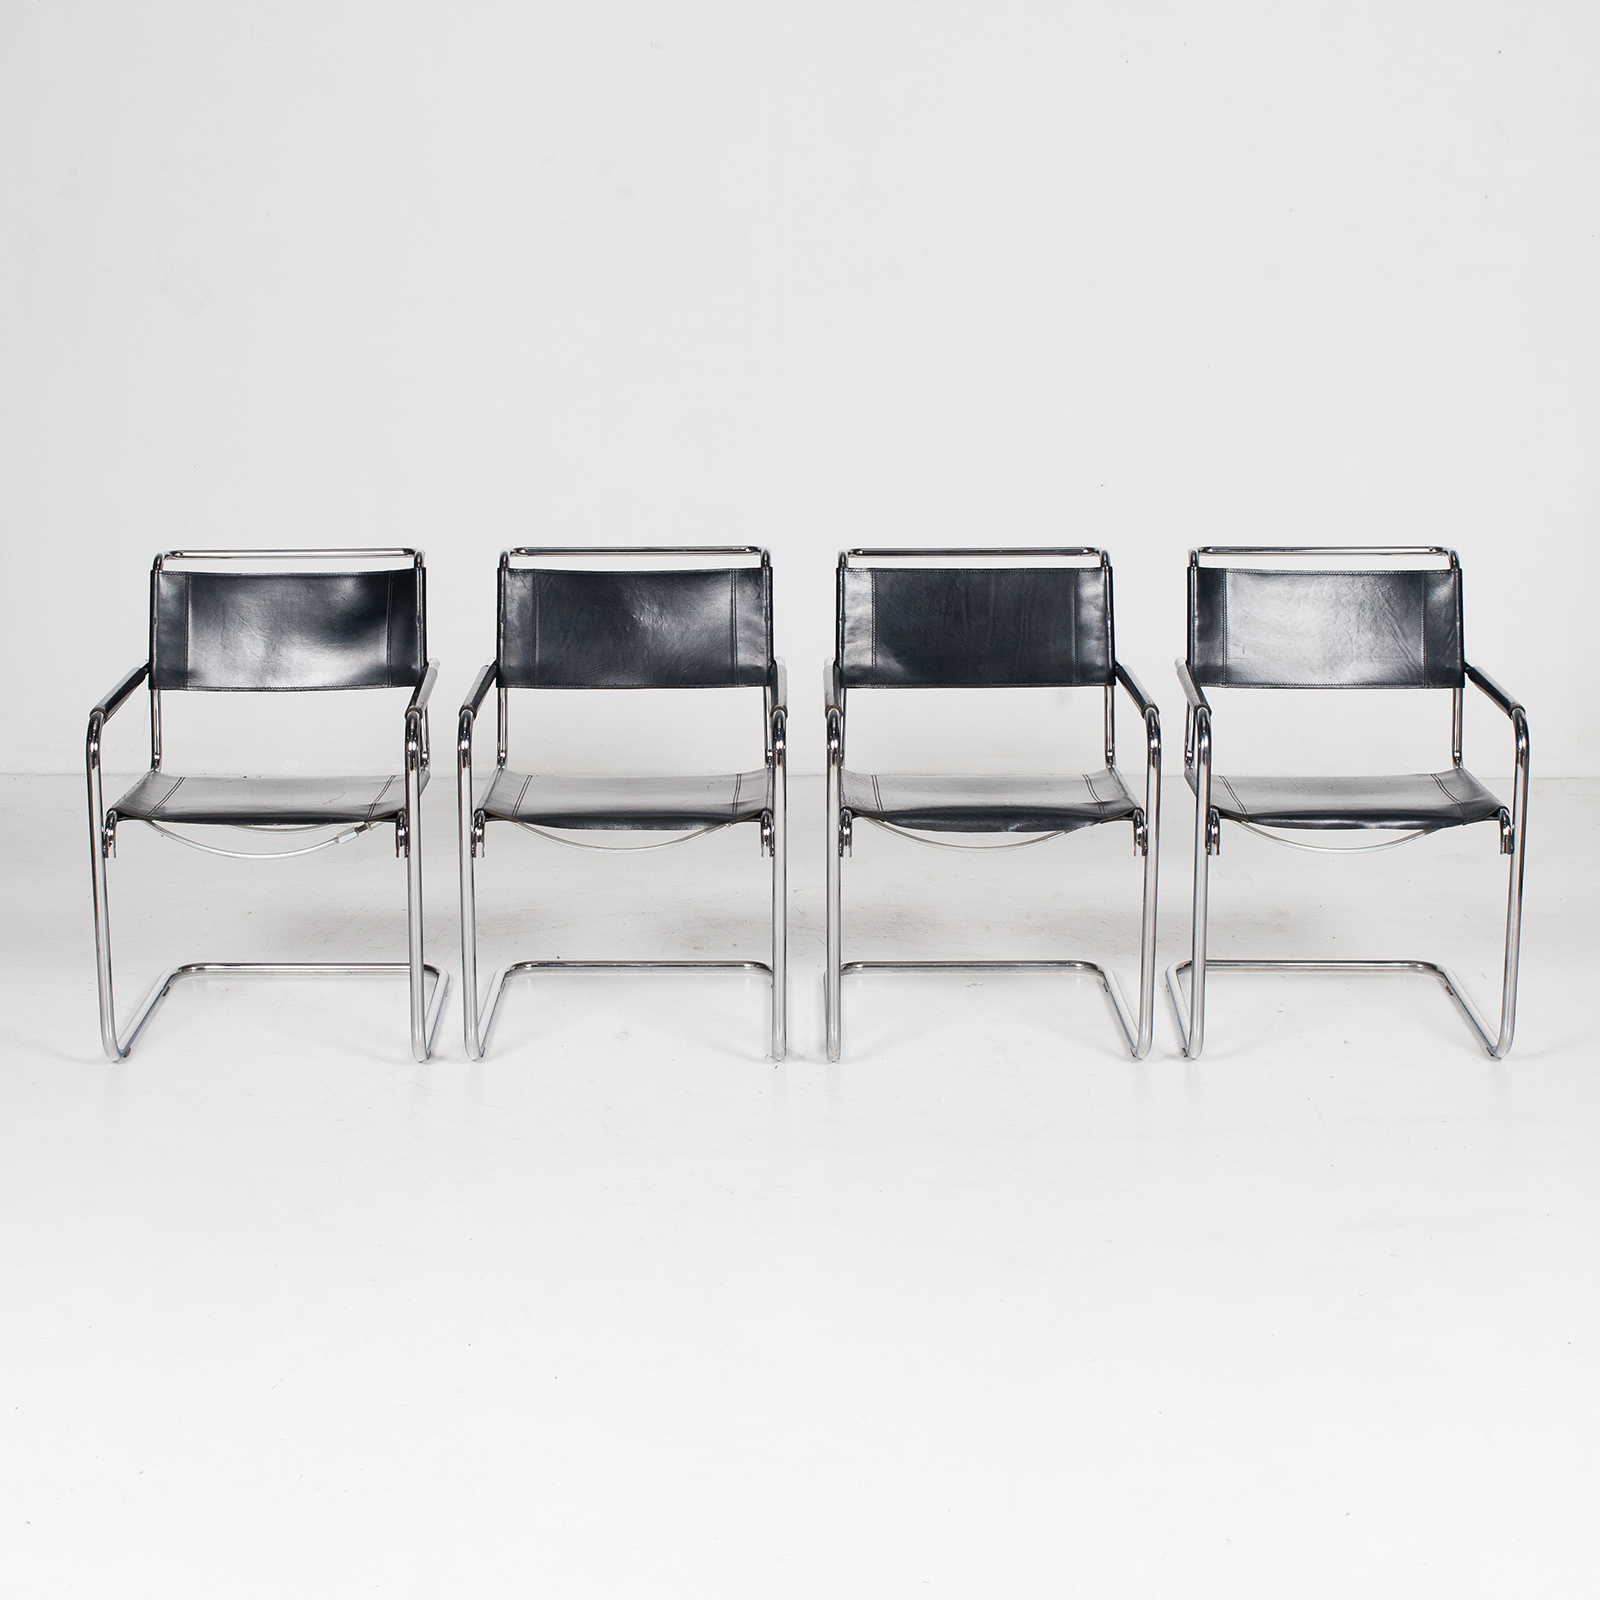 Set Of Four Cantilever Dining Chairs In Black Leather And Chrome By Mart Stam For Thonet, 1970s, The Netherlands 406